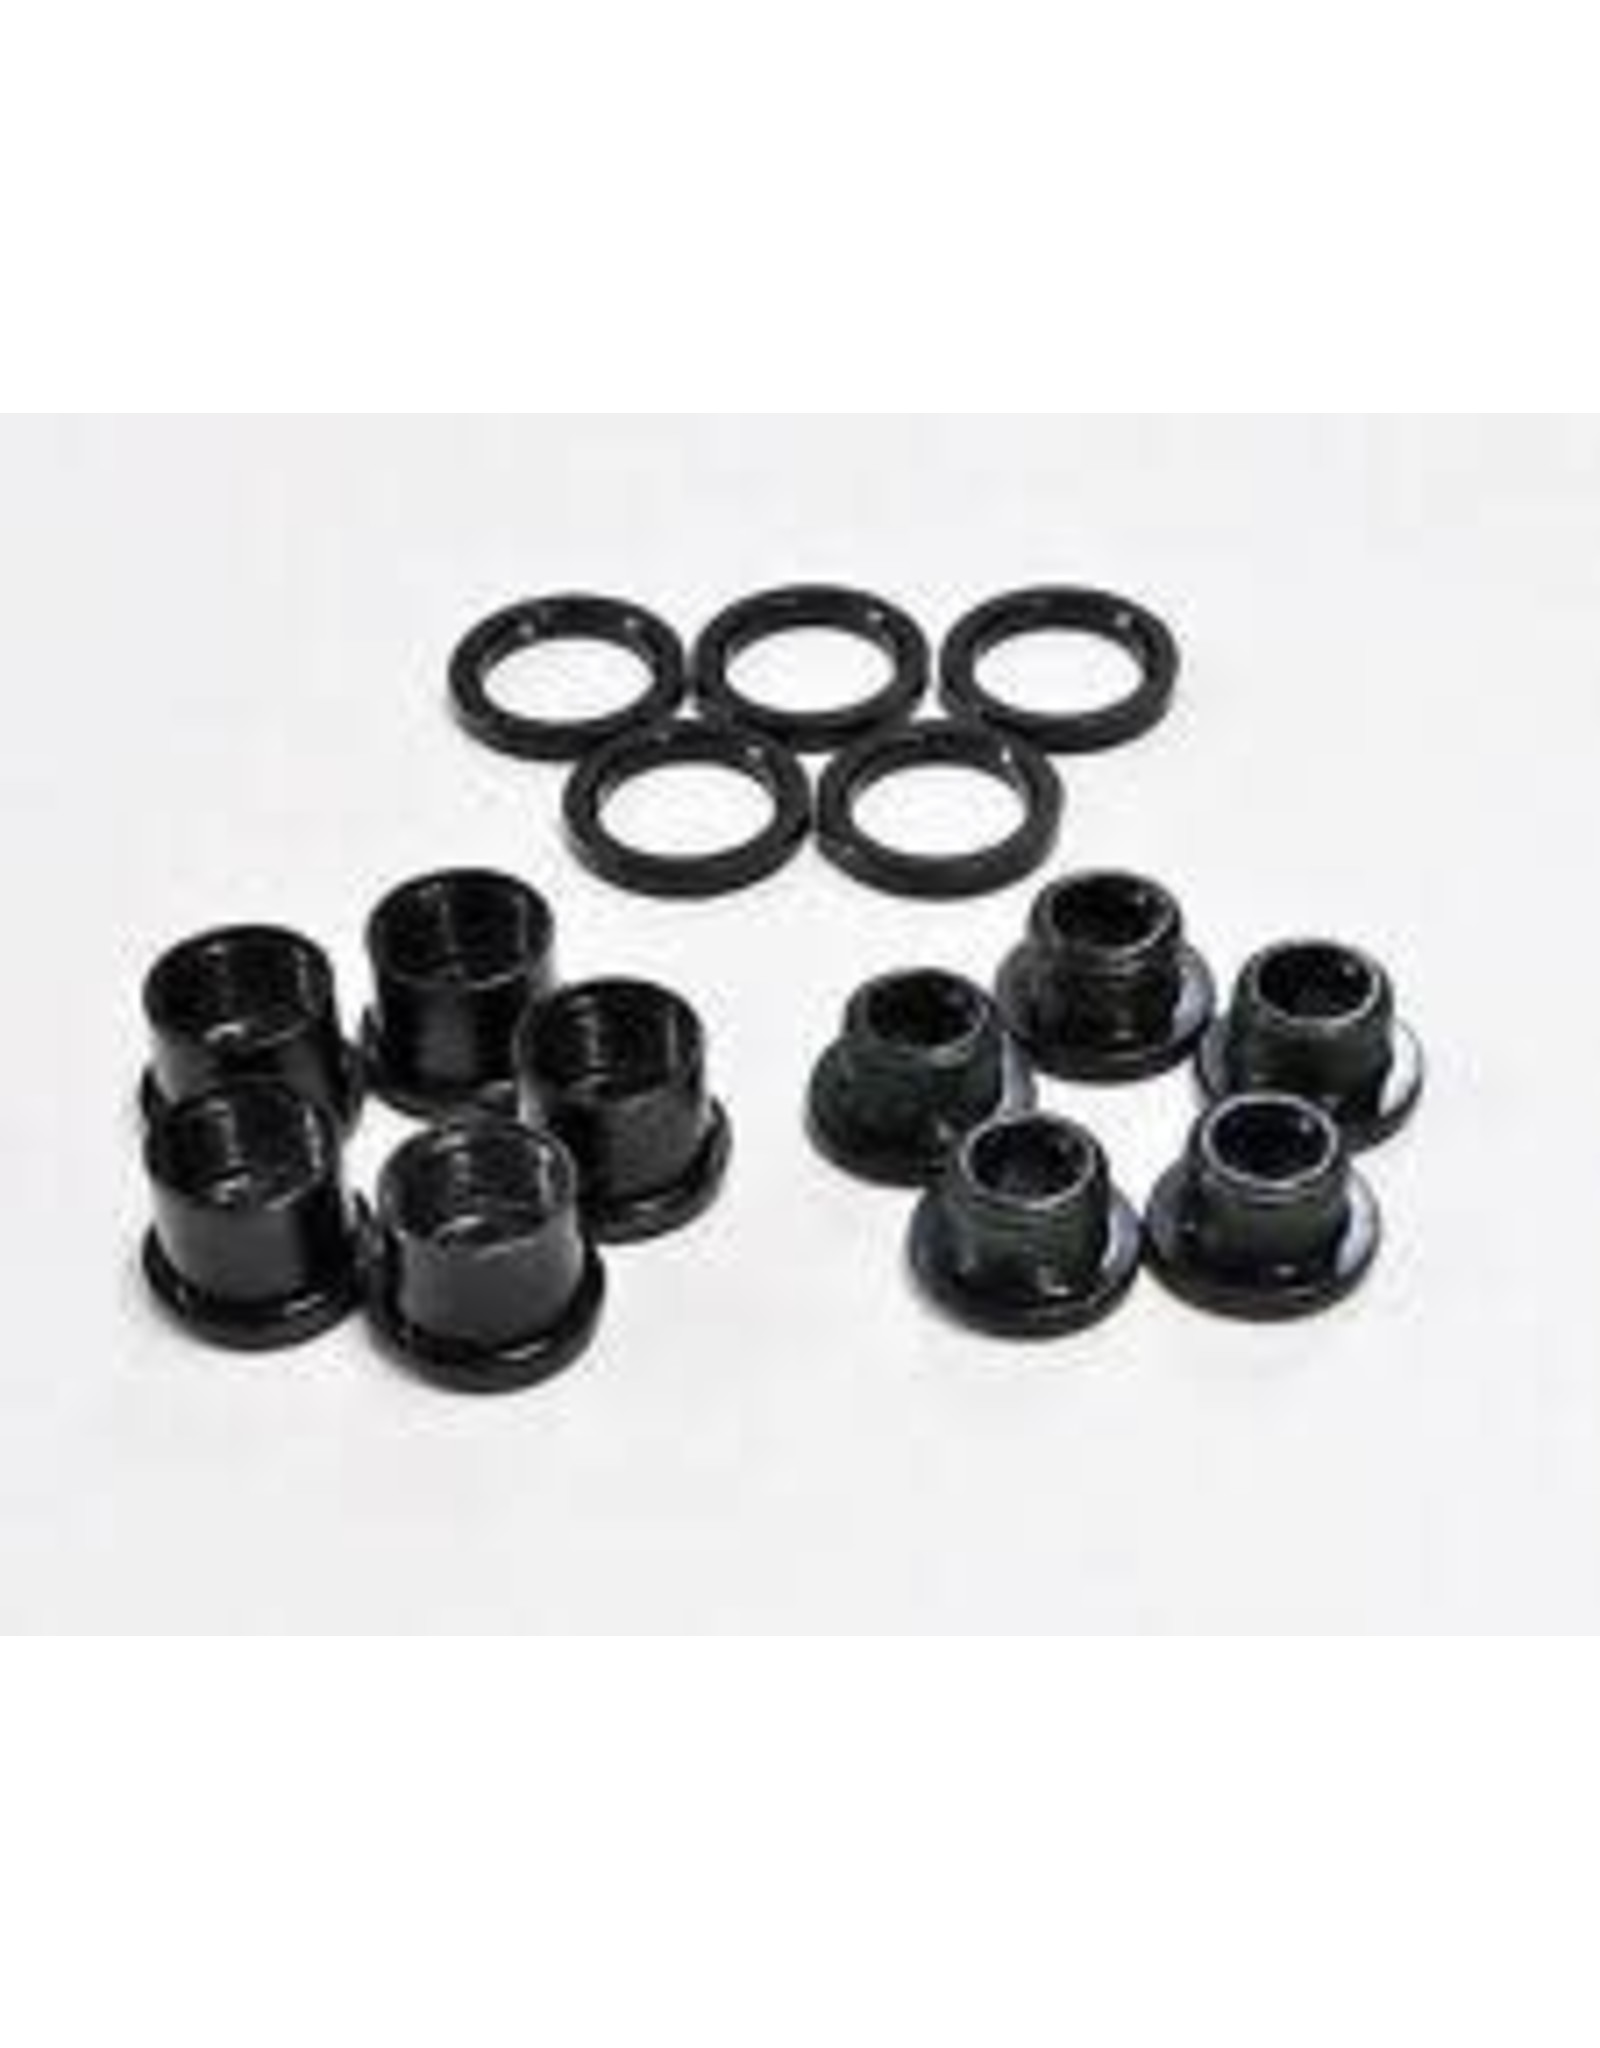 SRAM Chainring Bolt Set 5-Arm Blk W/Spacer